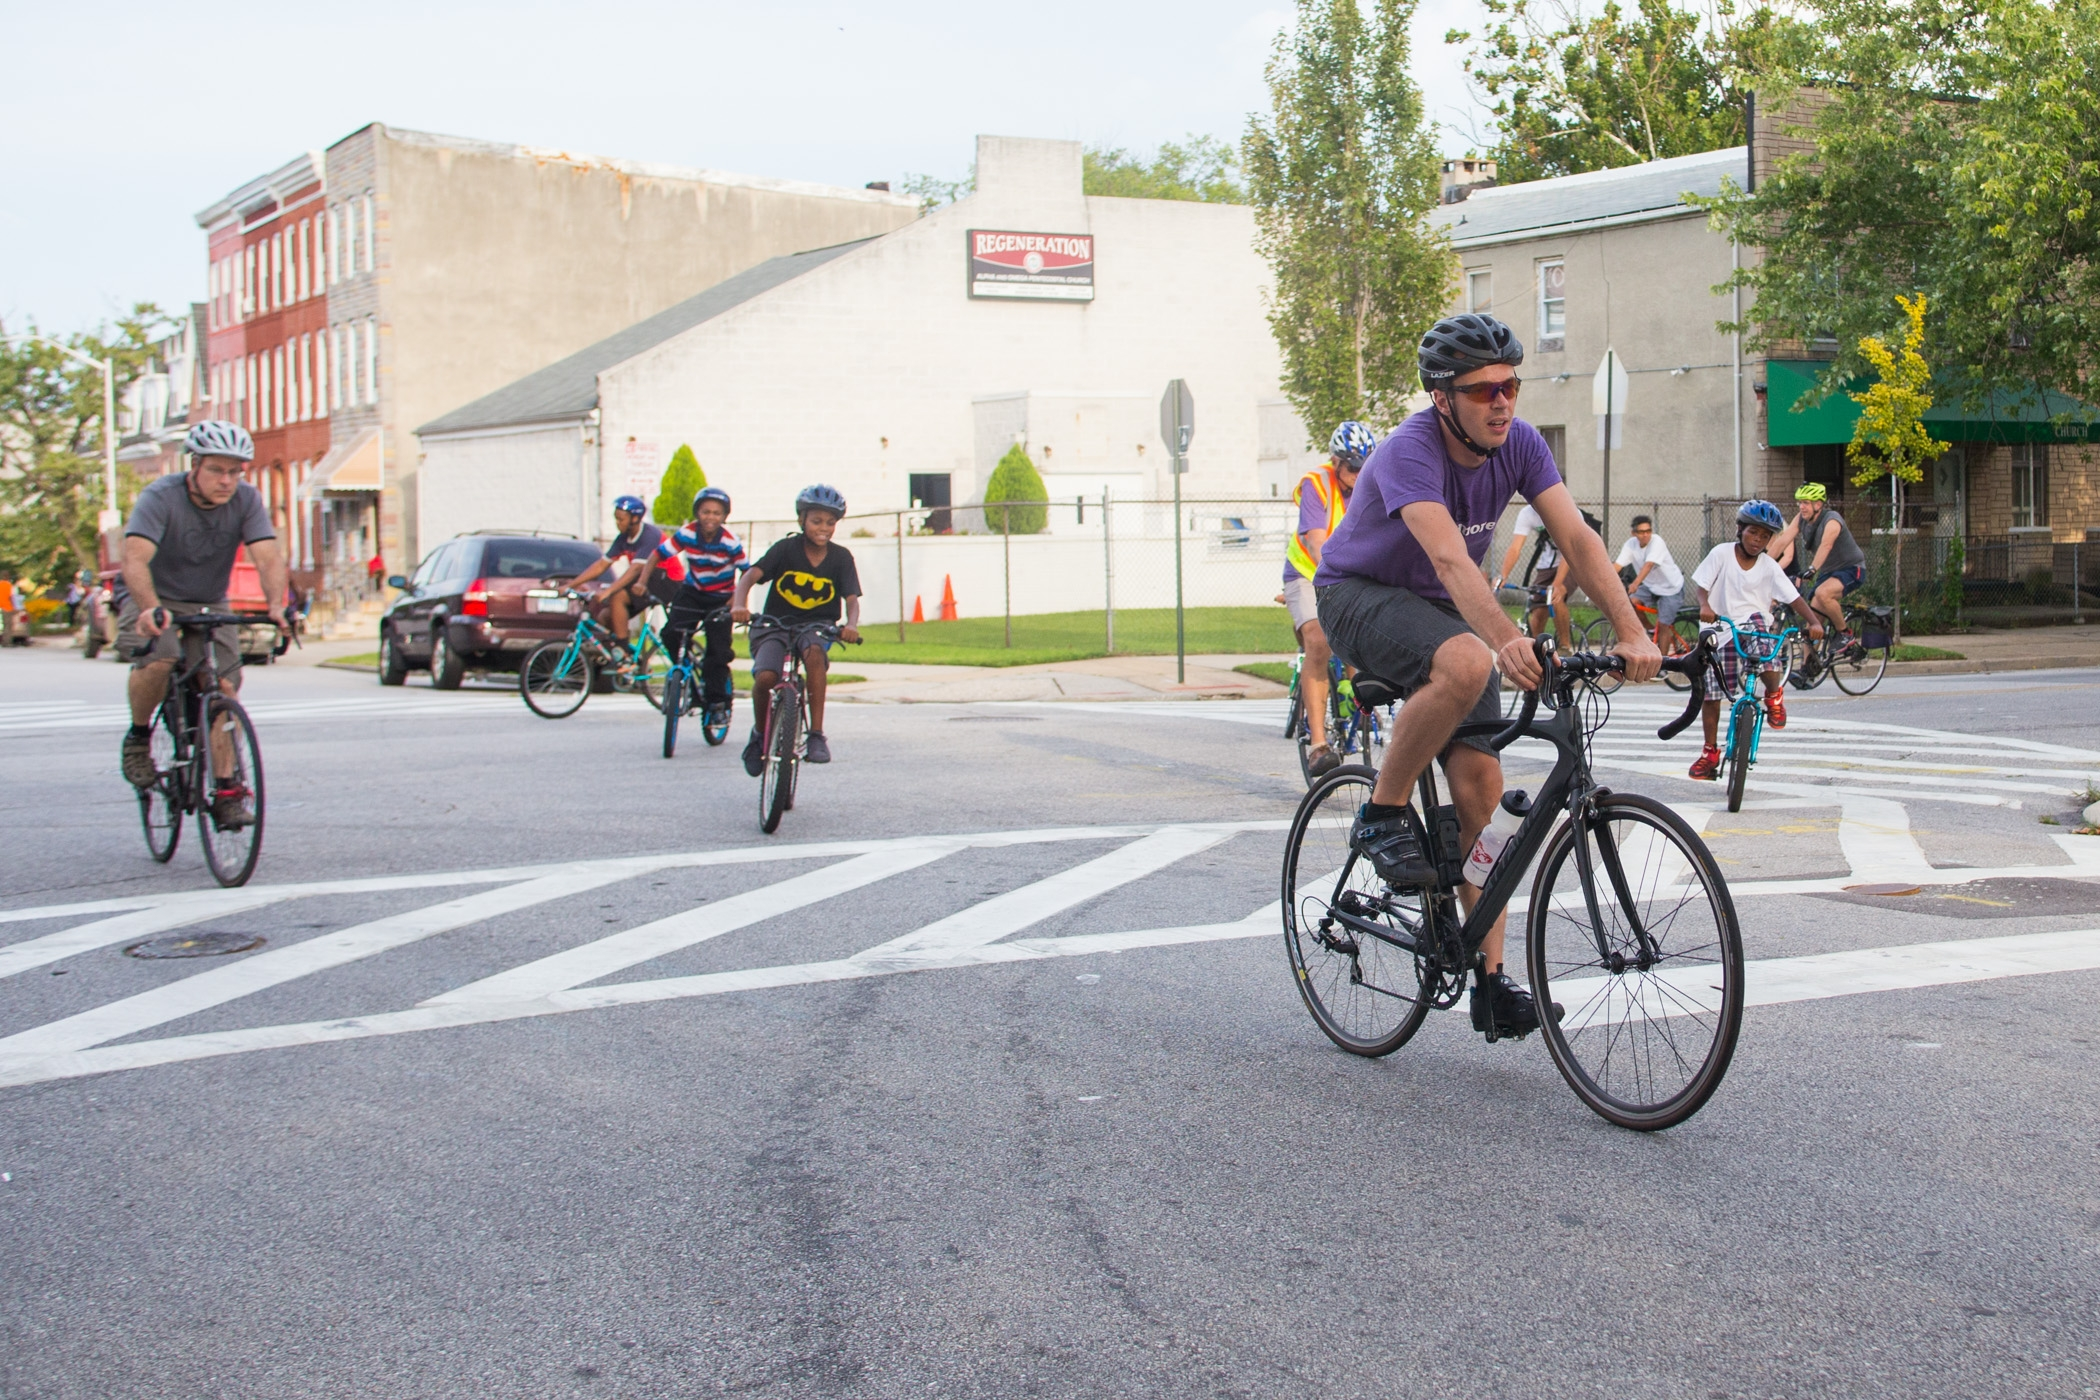 RIDE  We organize rides to bring people together, to explore particular areas or issues, and to enjoy Baltimore by bike together! You might help check people in, act as a ride marshal to keep riders on route, or help with route planning beforehand.